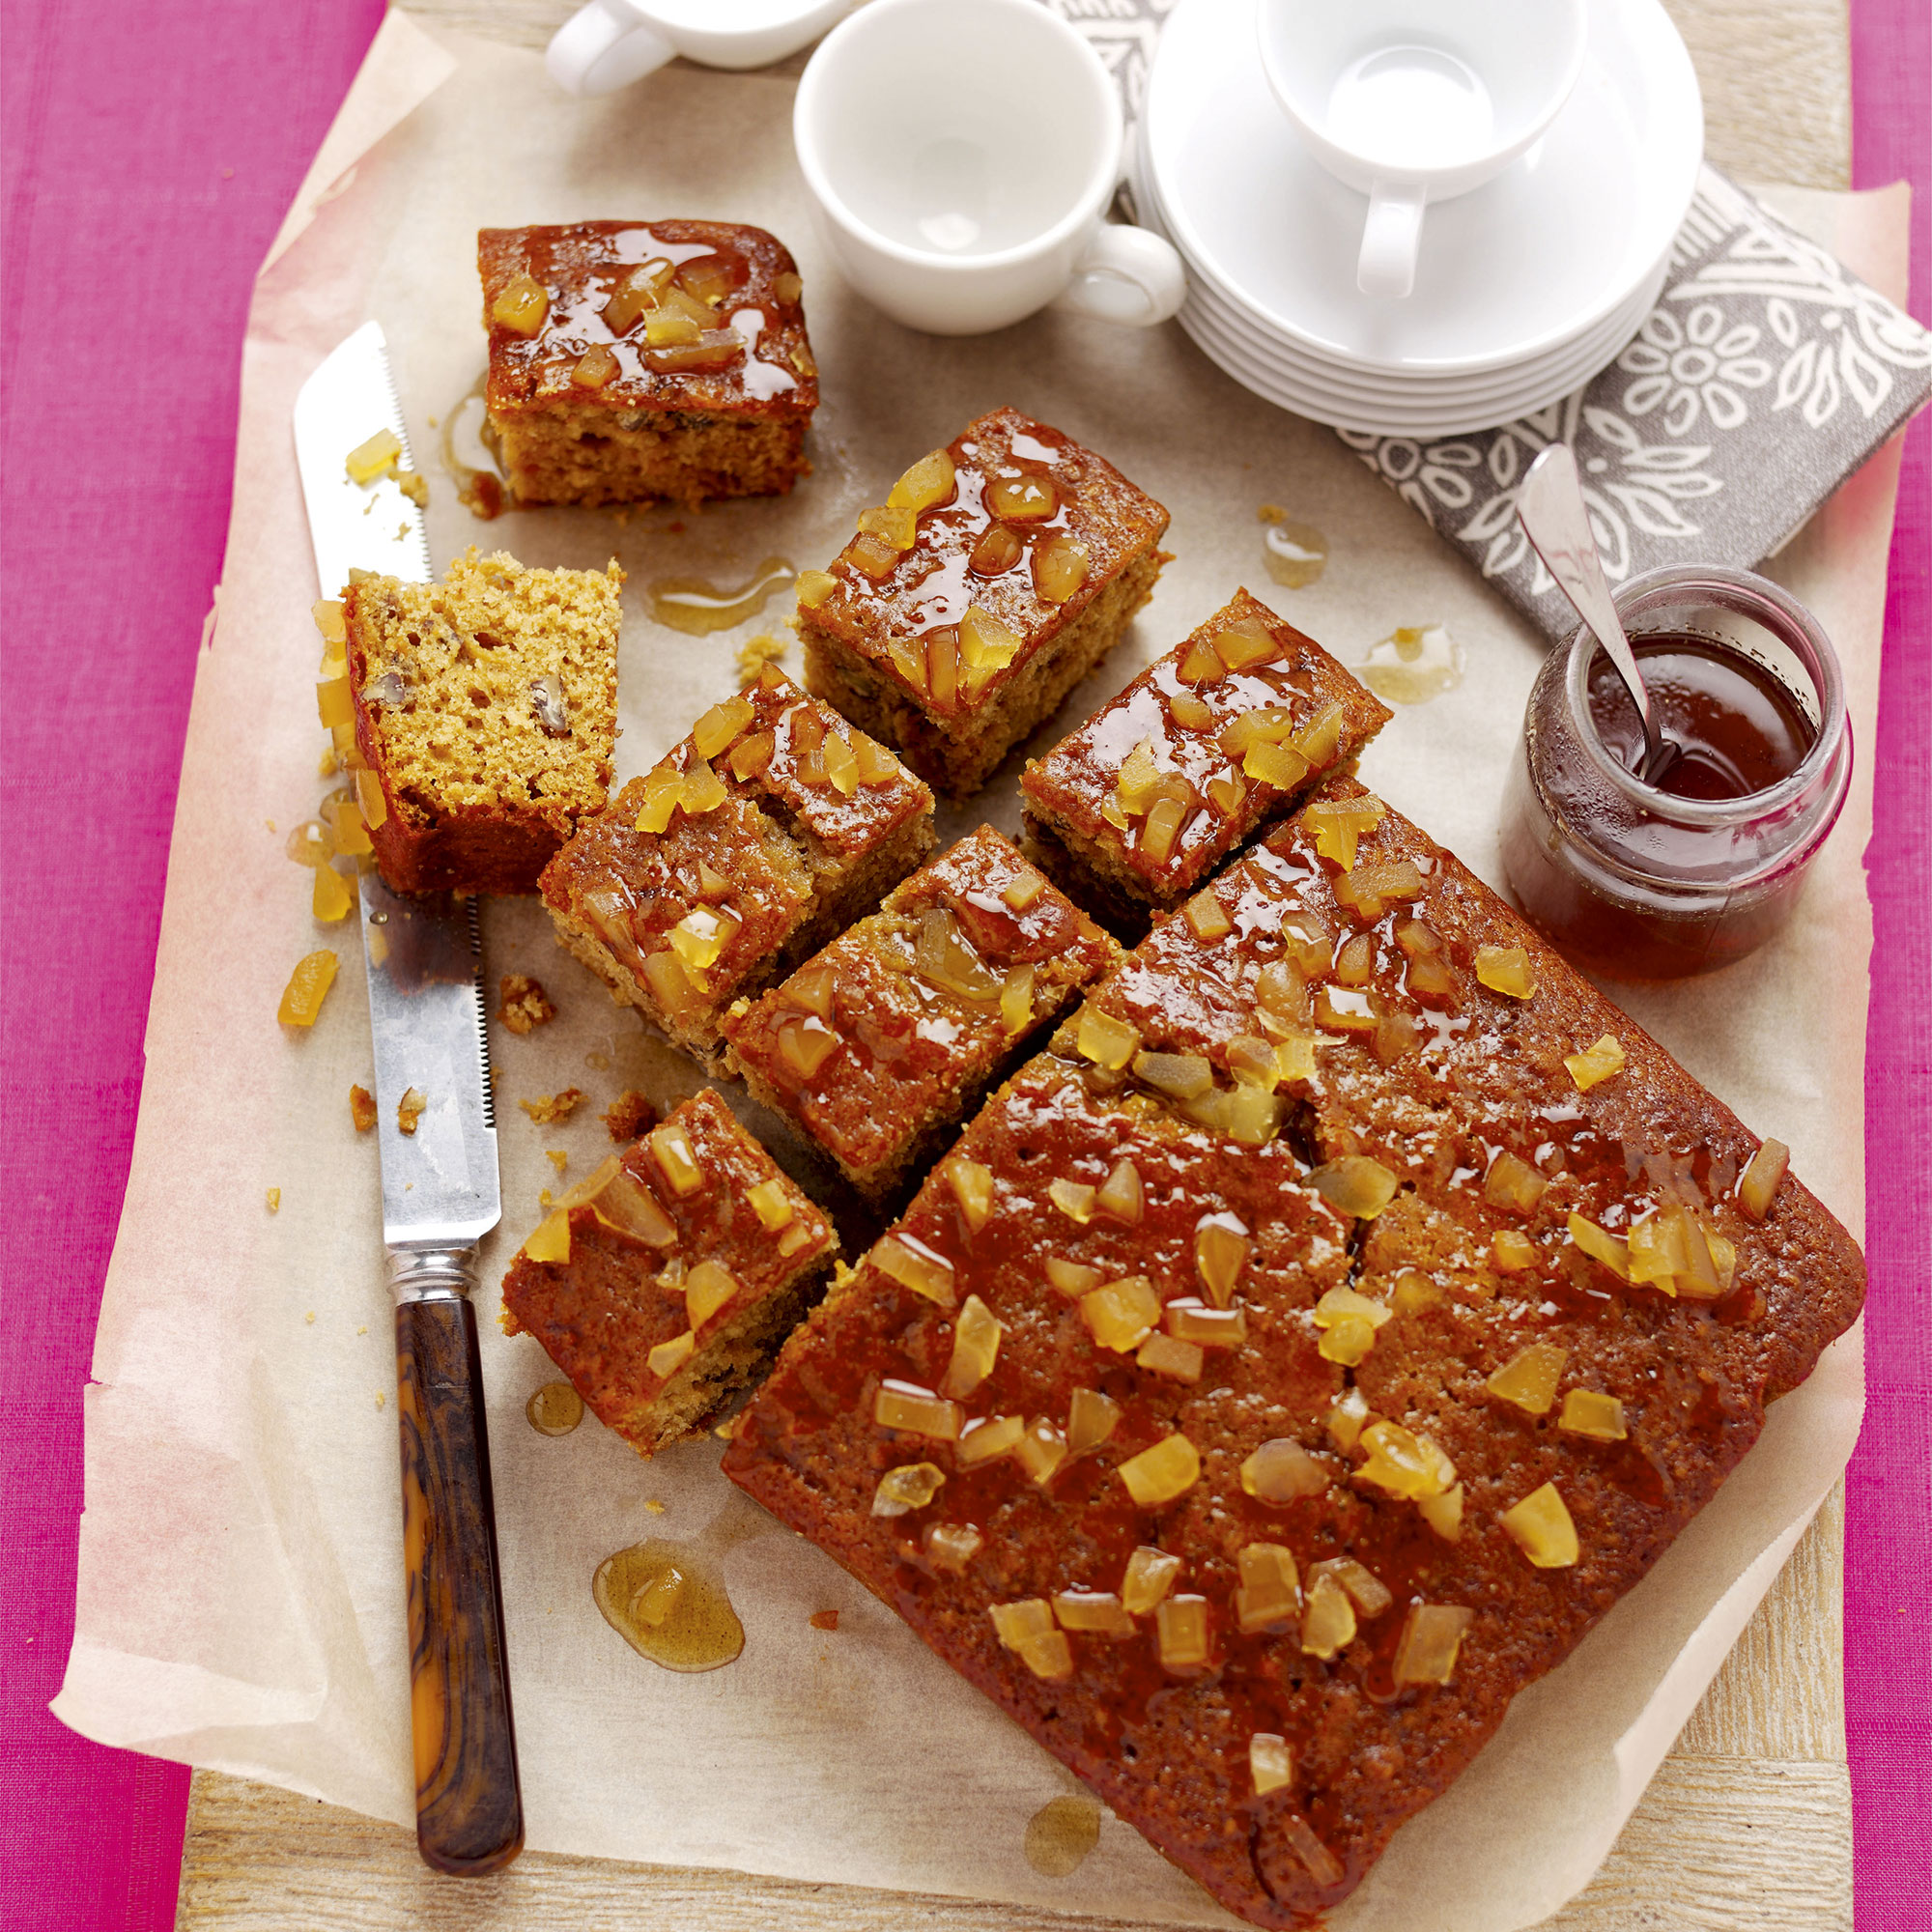 Have a go at making this moreish dairy free sticky ginger cake